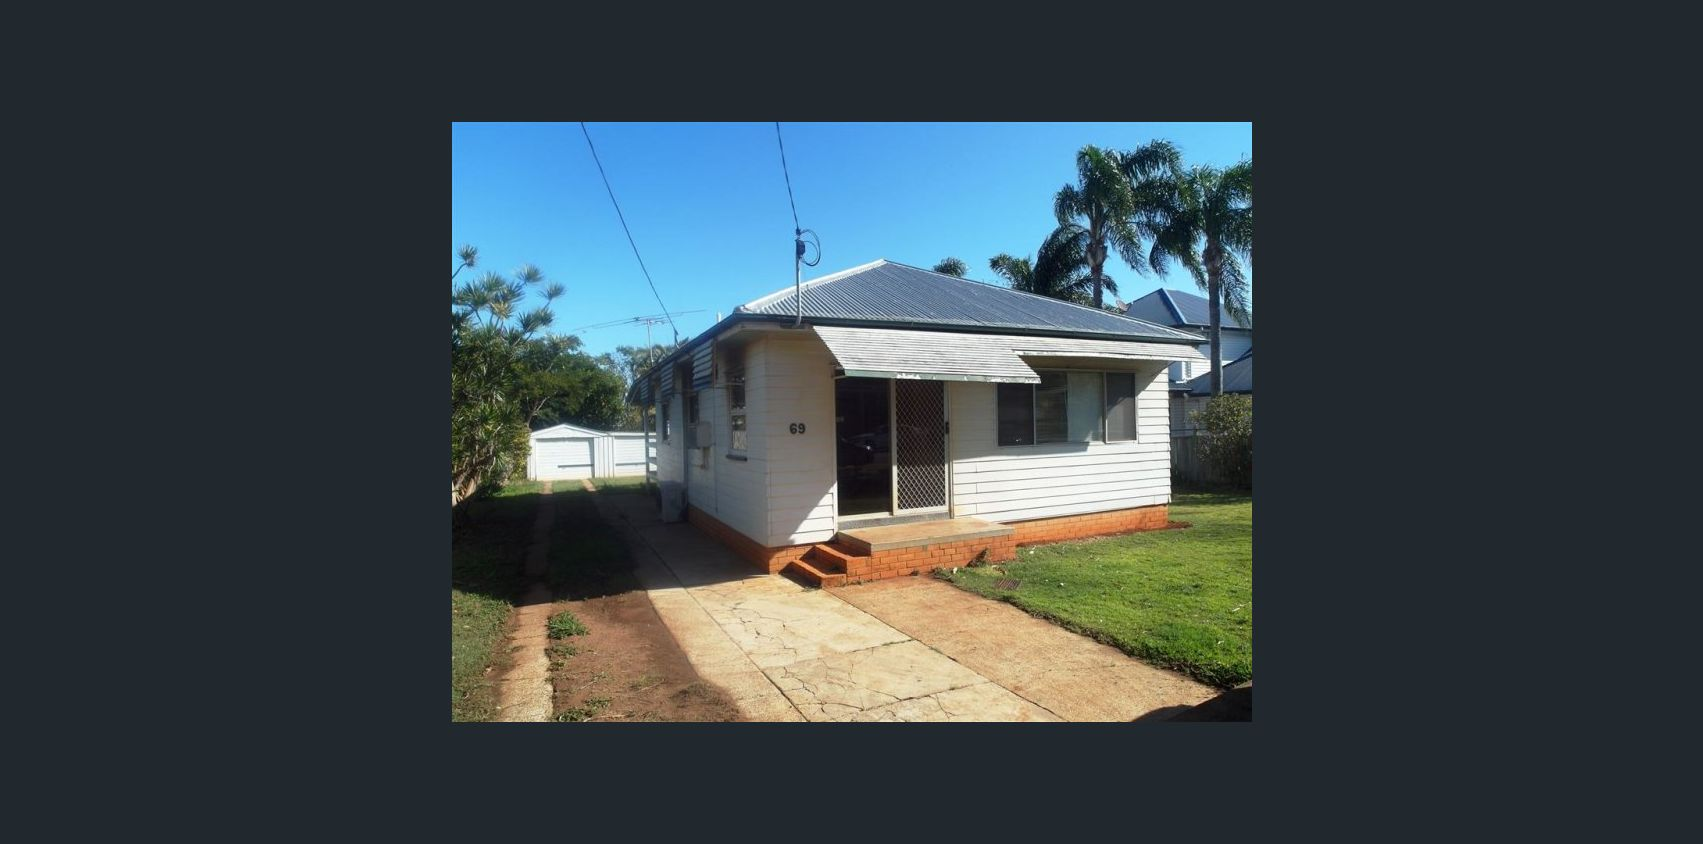 Woody Point house Before